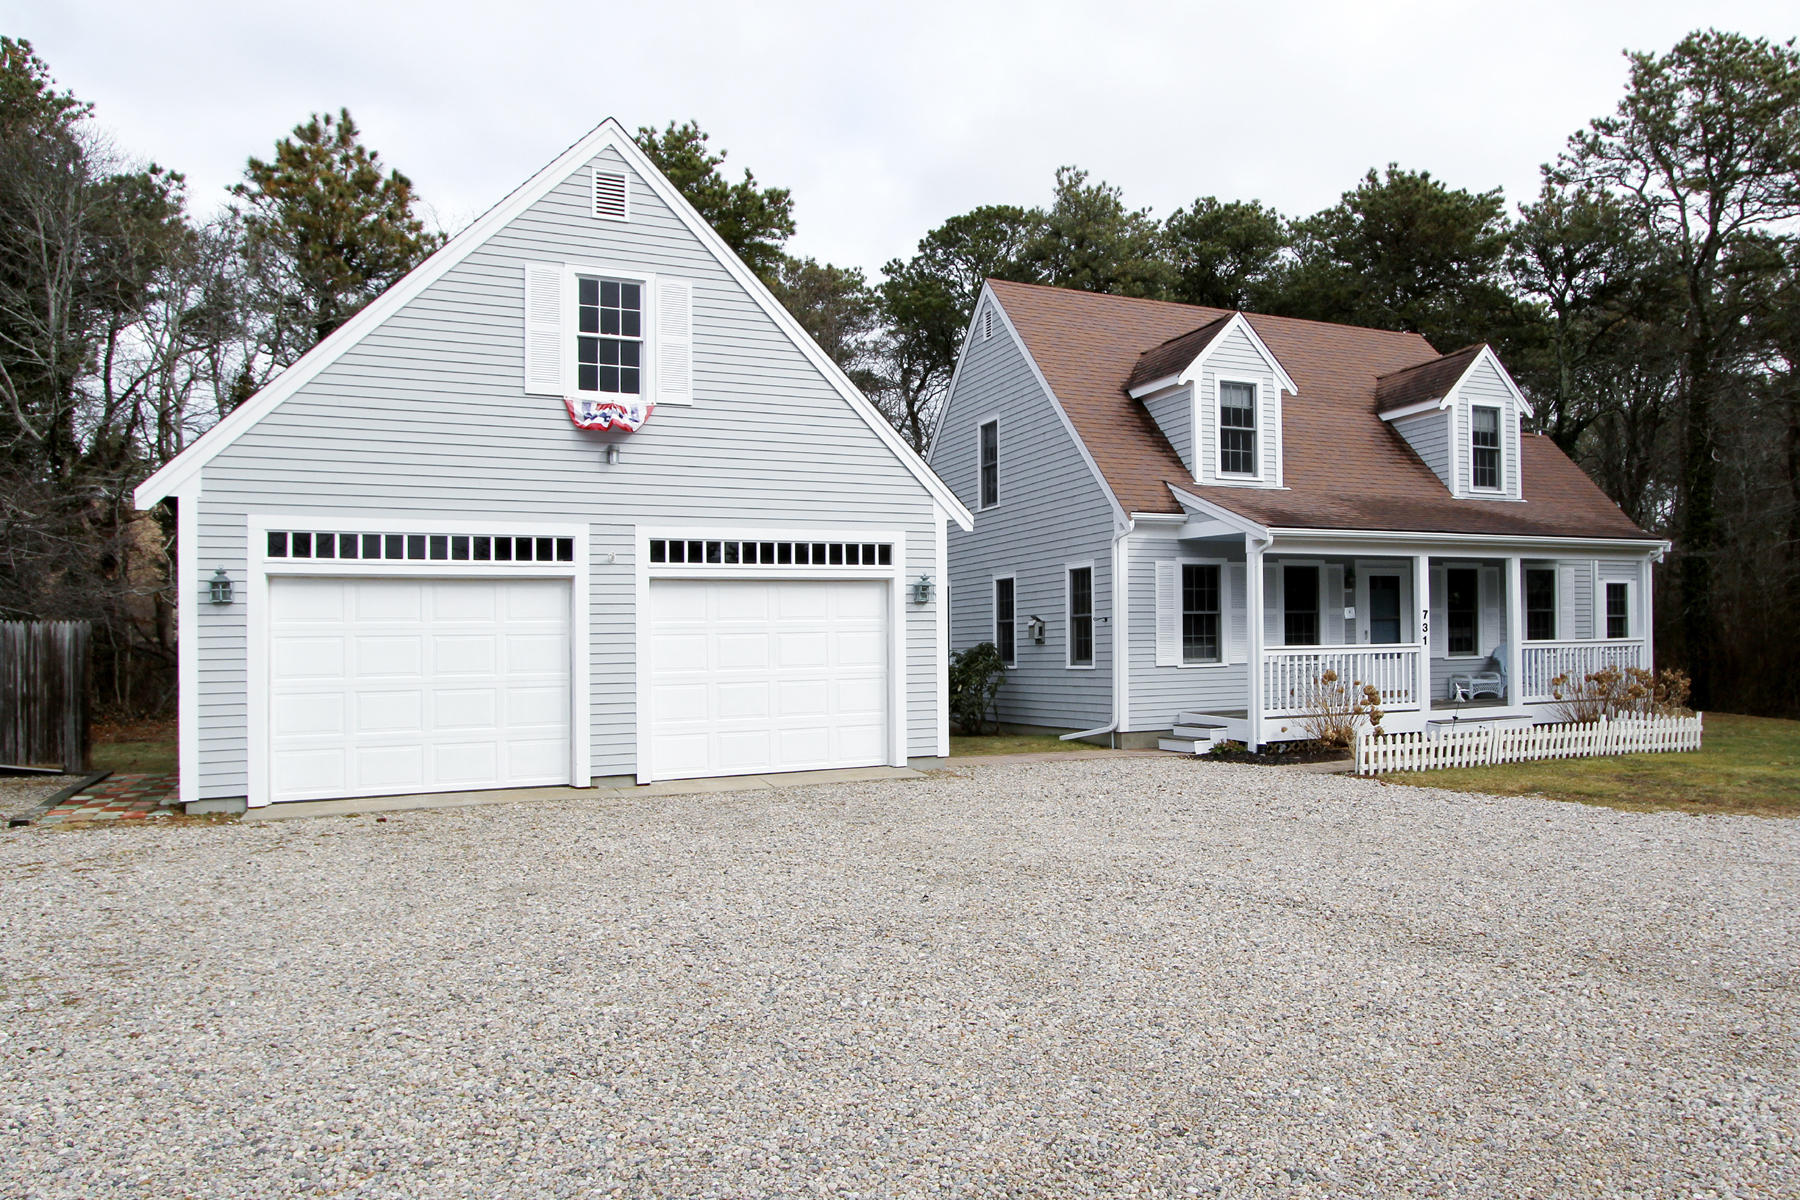 Single Family Home for Sale at 731 Long Pond Road, Brewster, MA Brewster, 02631 United States